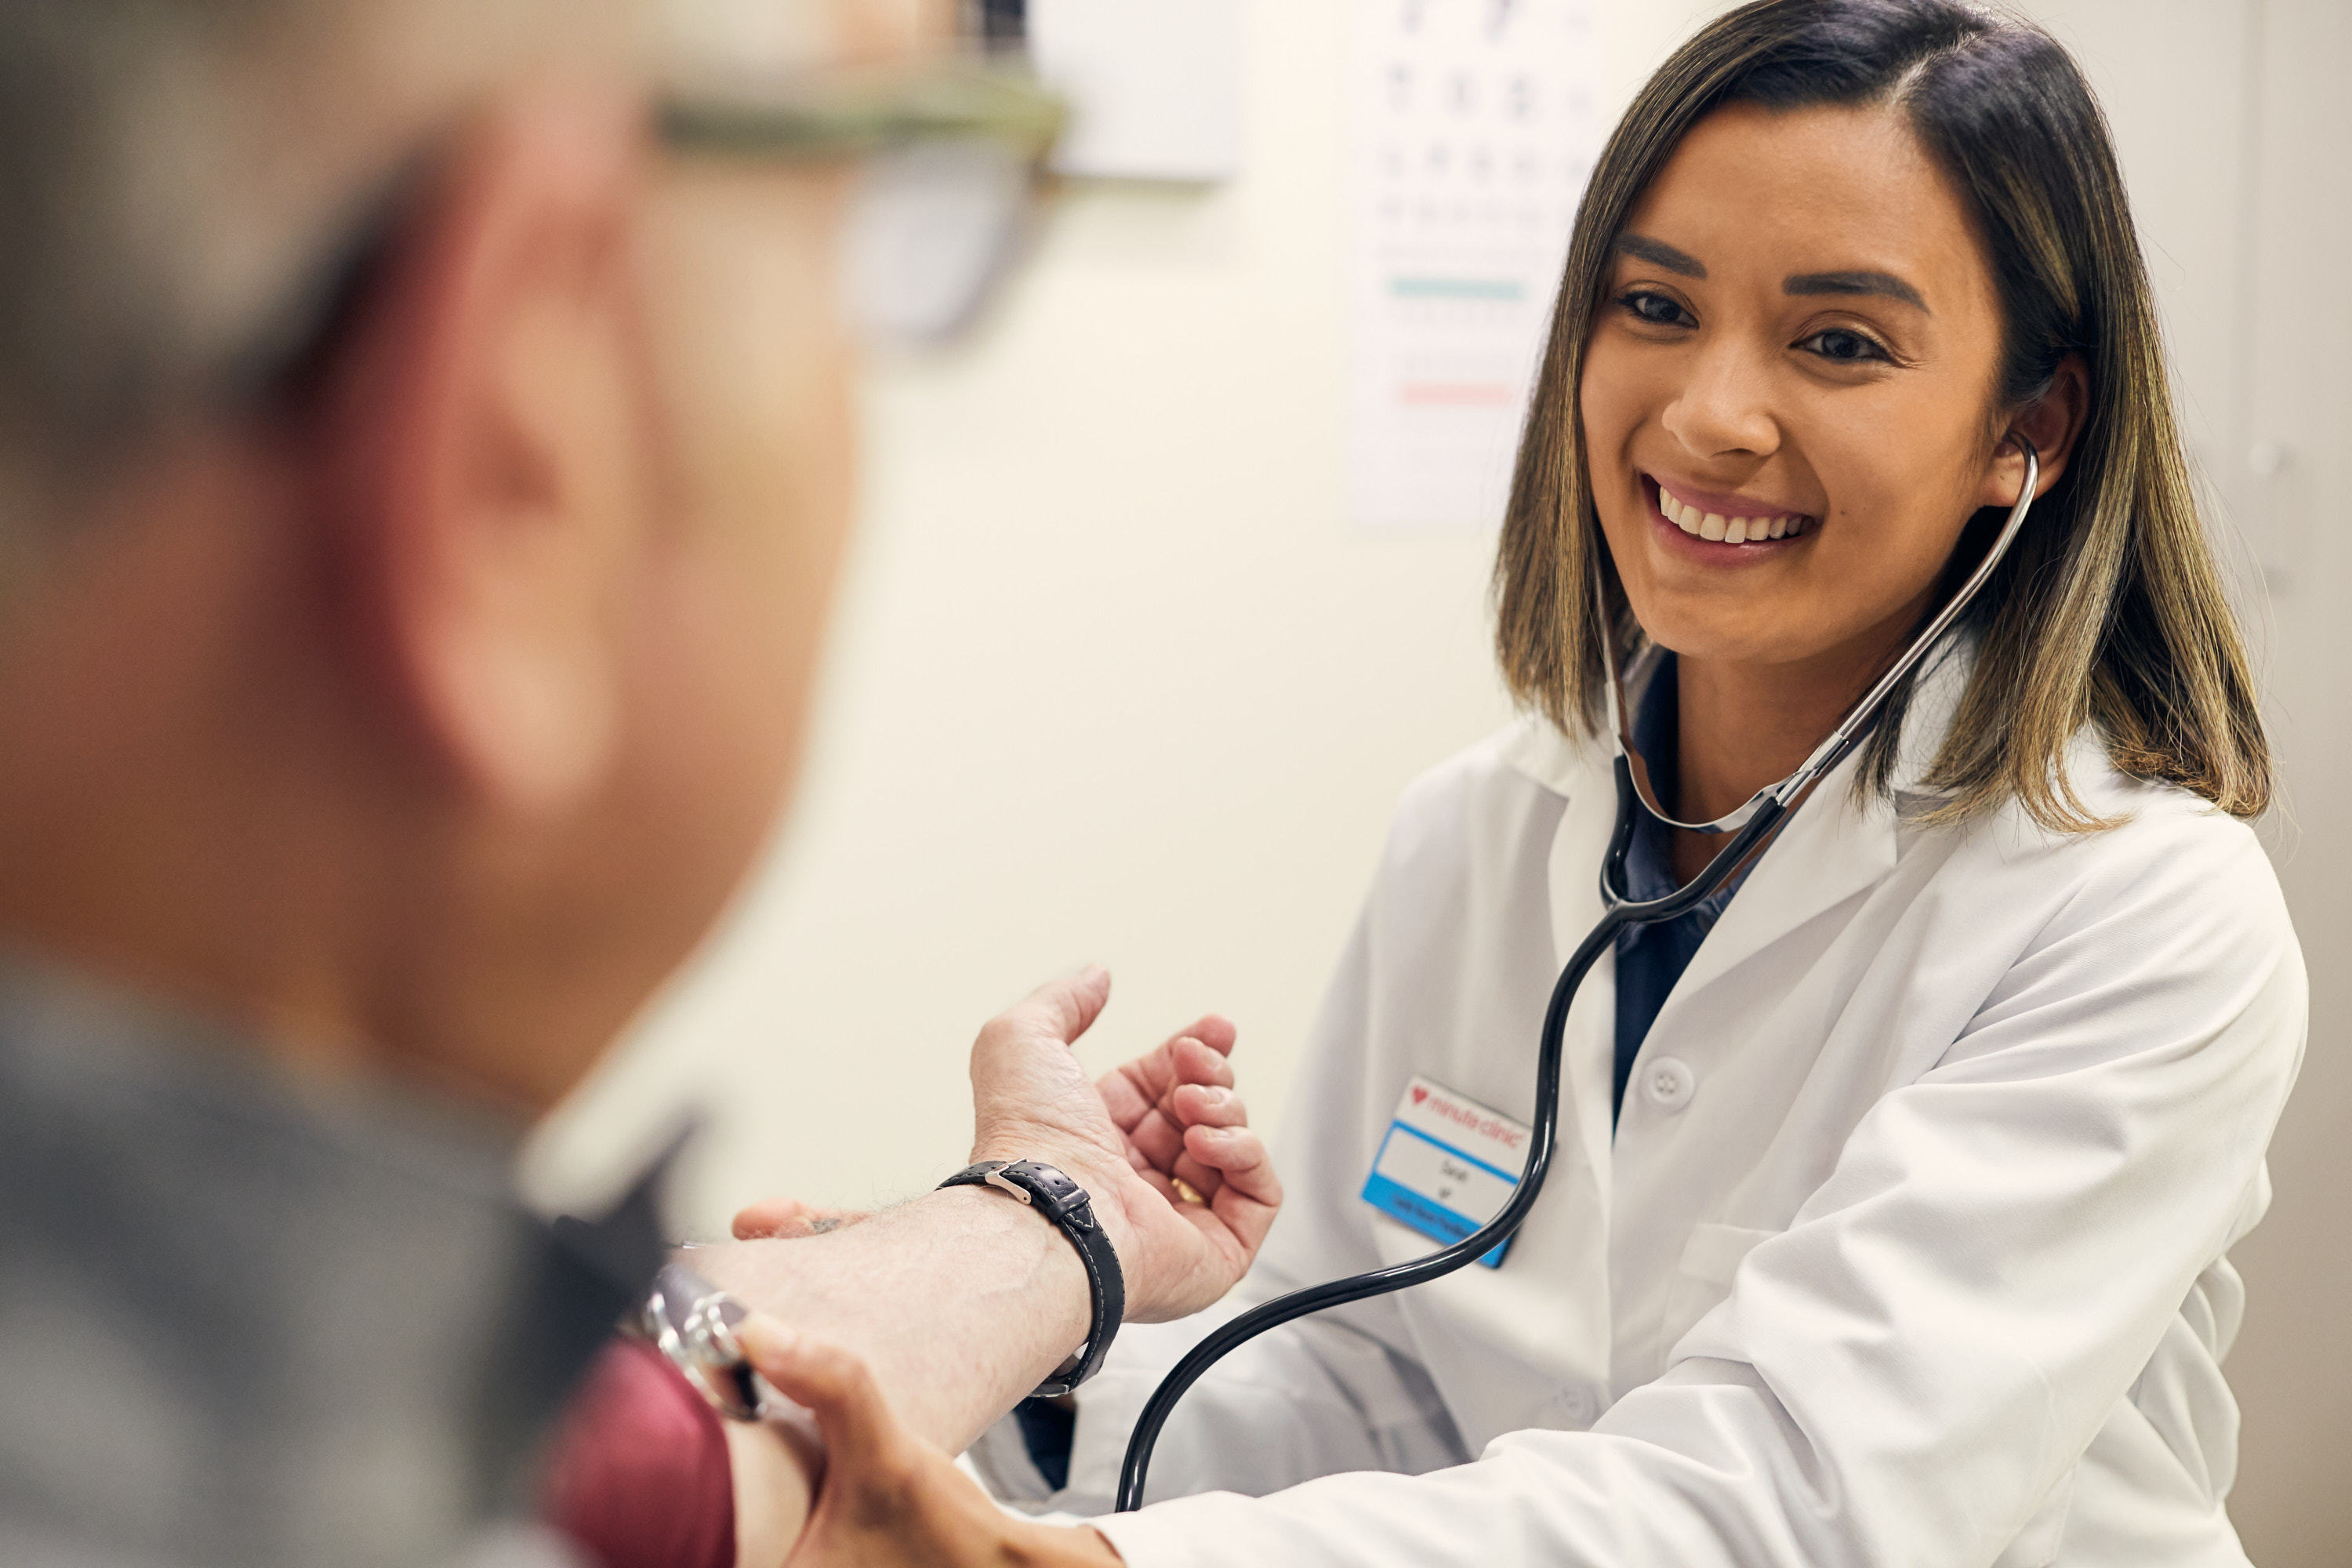 Healthcare Photography | Blood Pressure Check